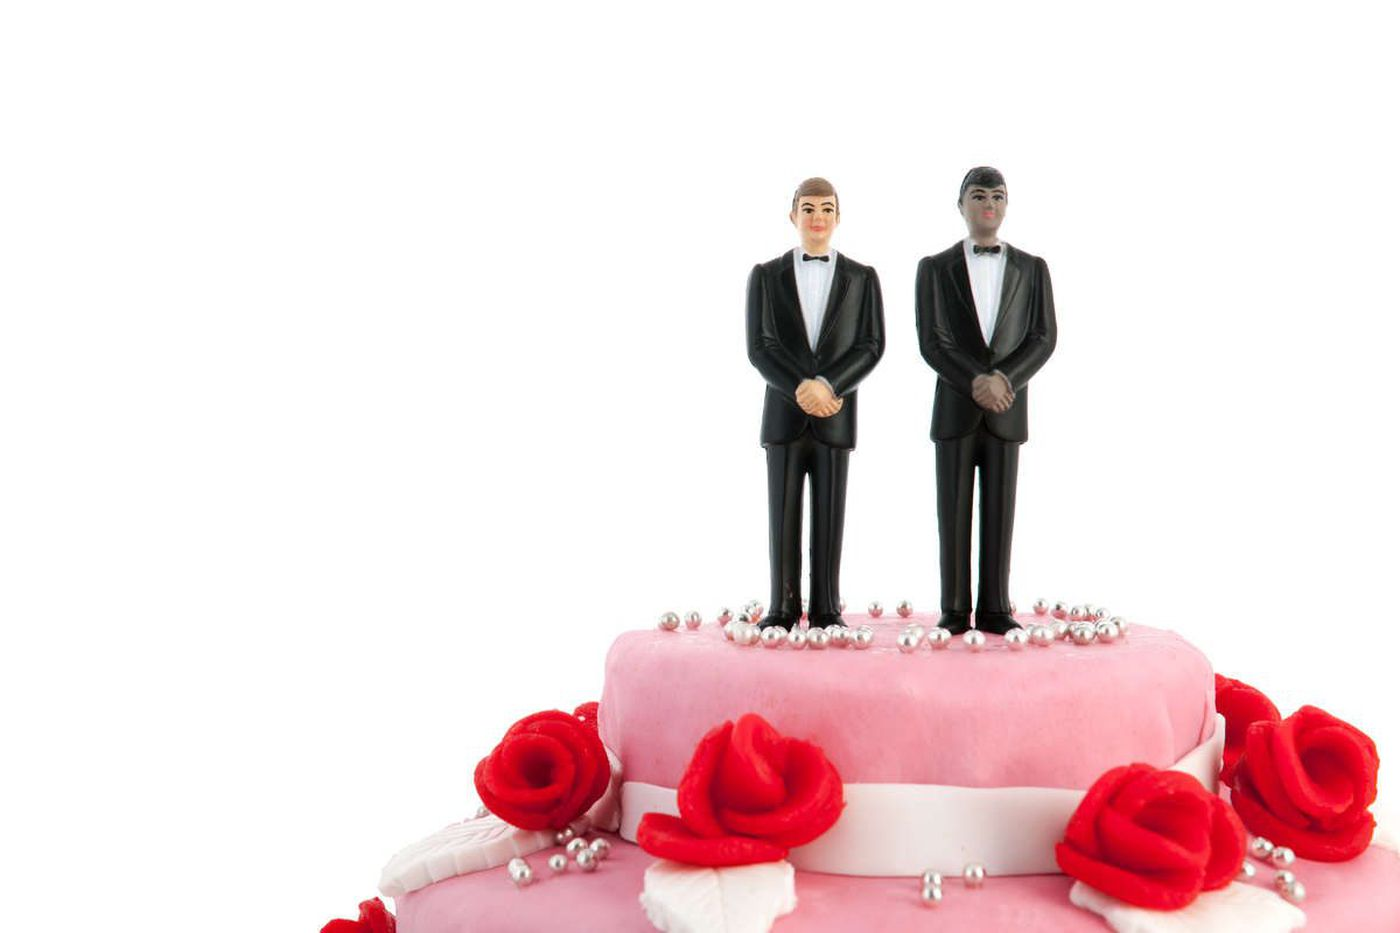 More than gay wedding cake: Why Supreme Court case is about dignity, not dessert  | Opinion